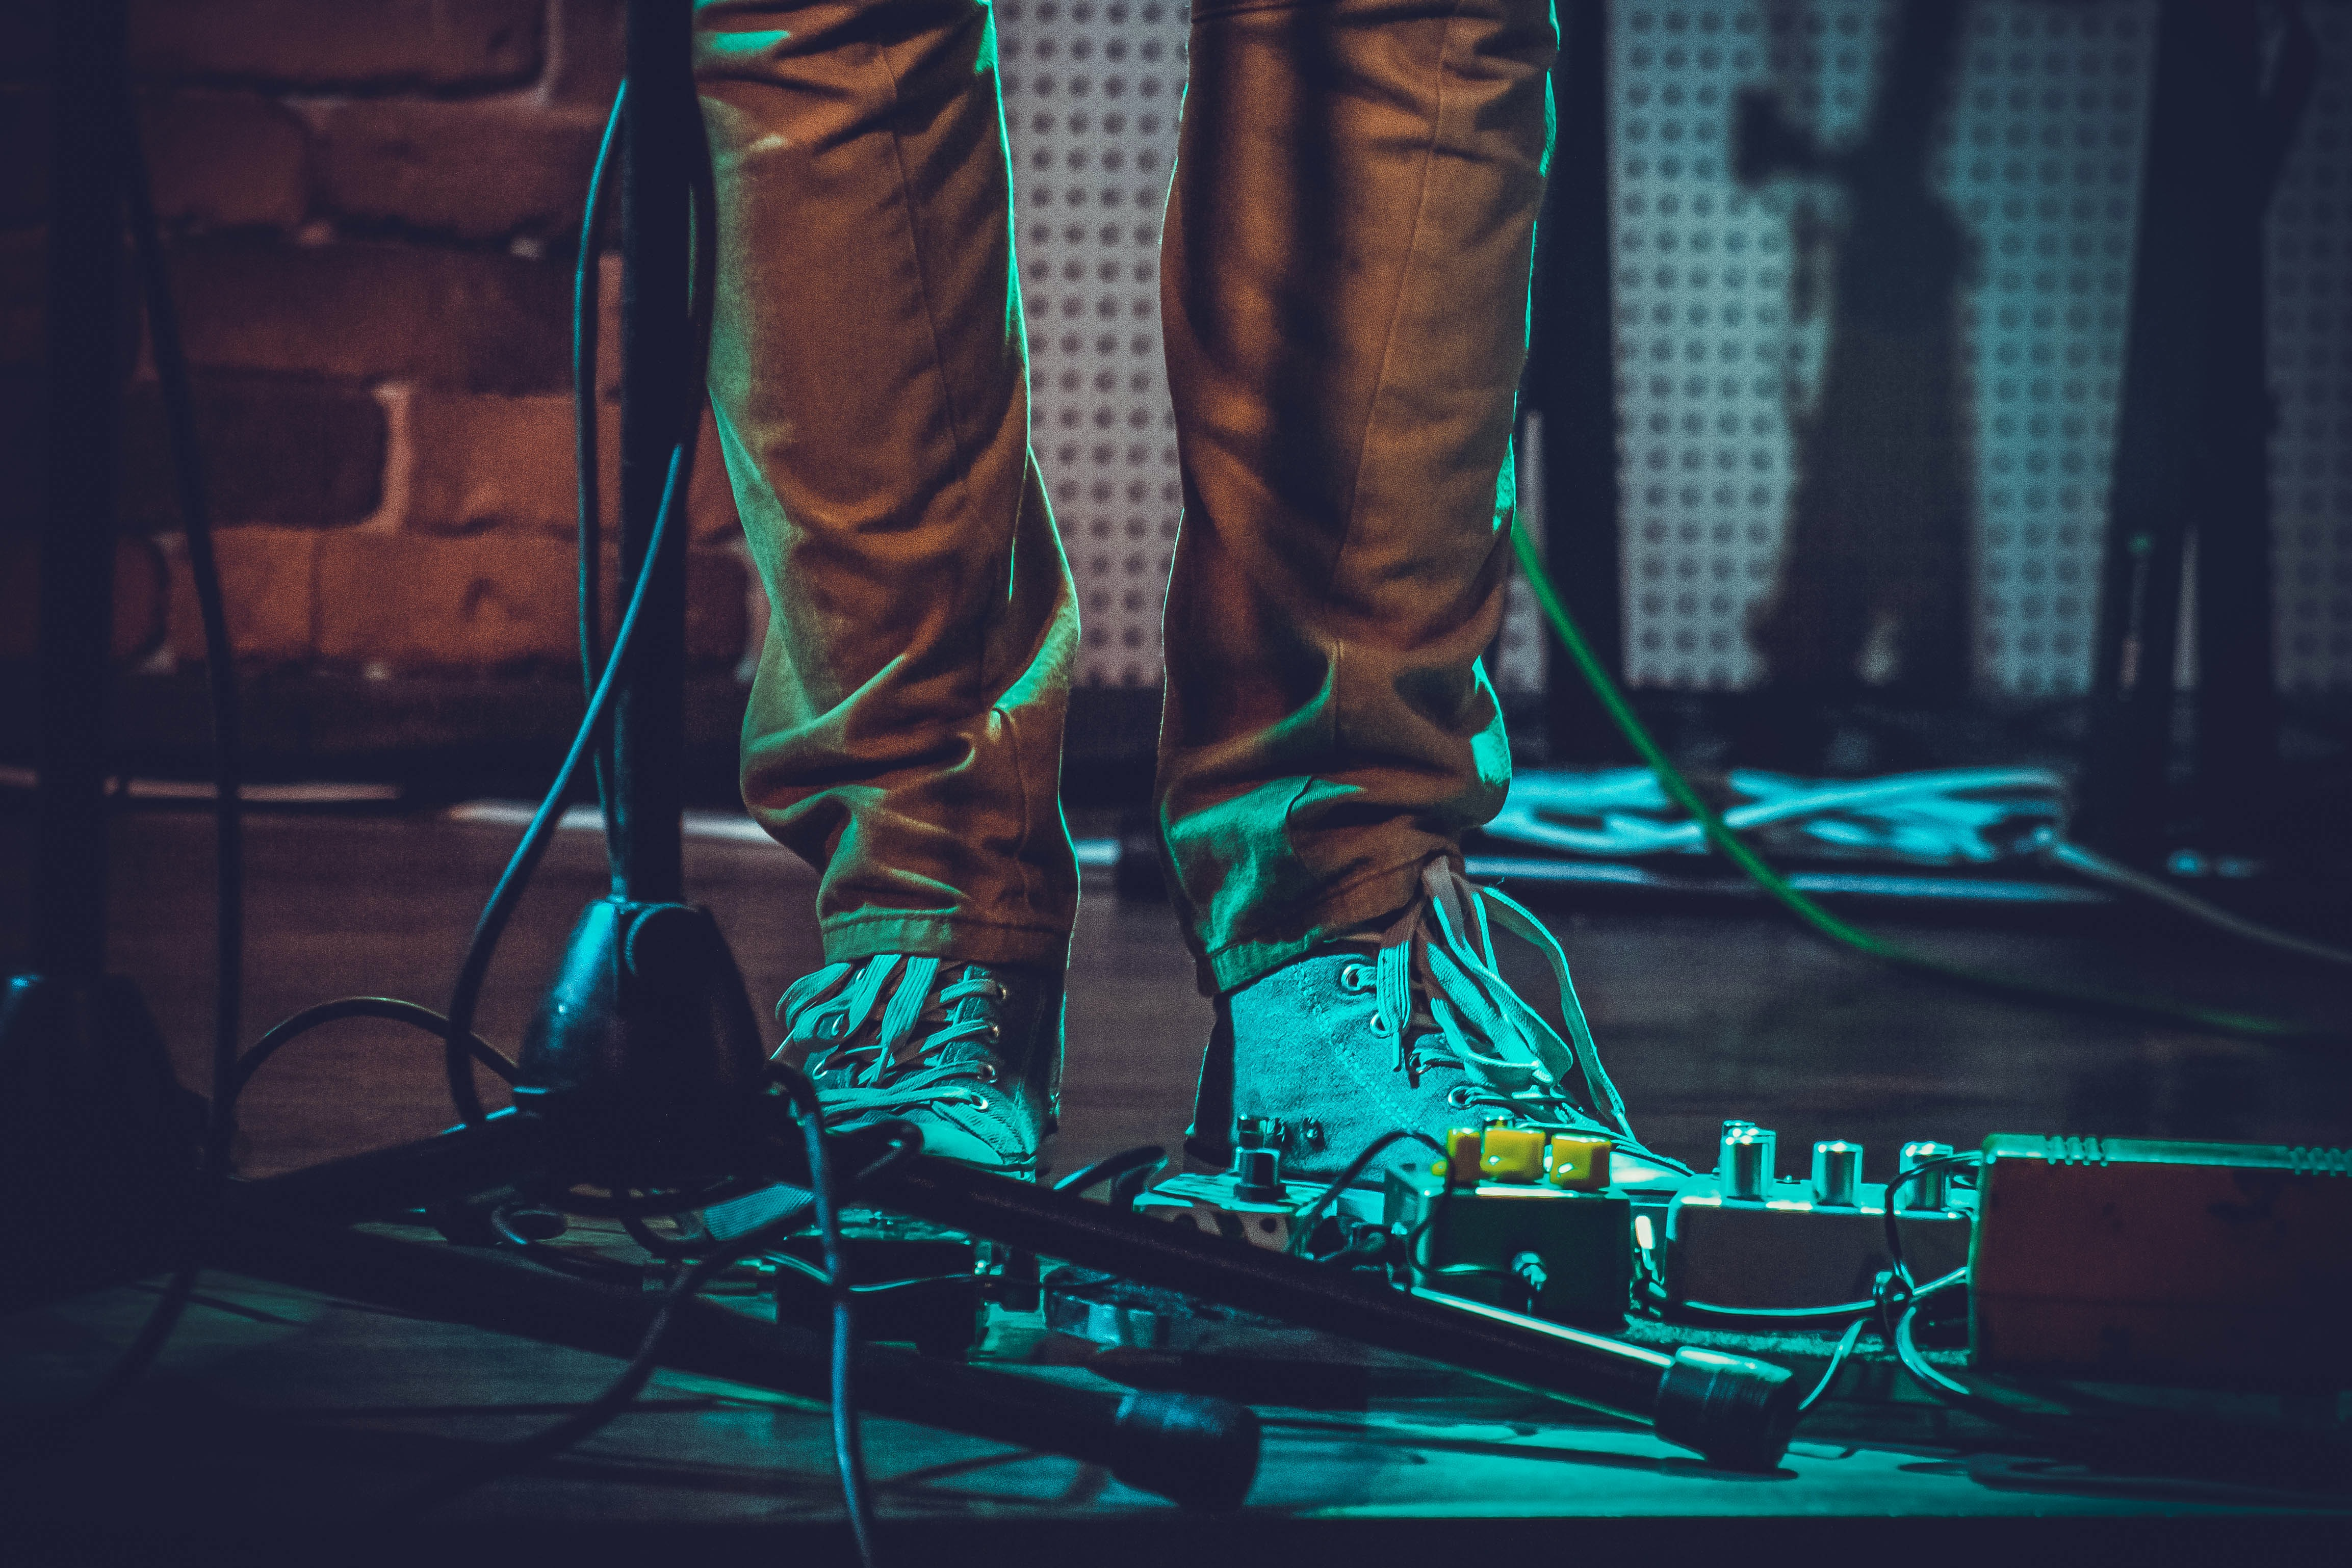 A low-shot of a musician's shoes and music equipment